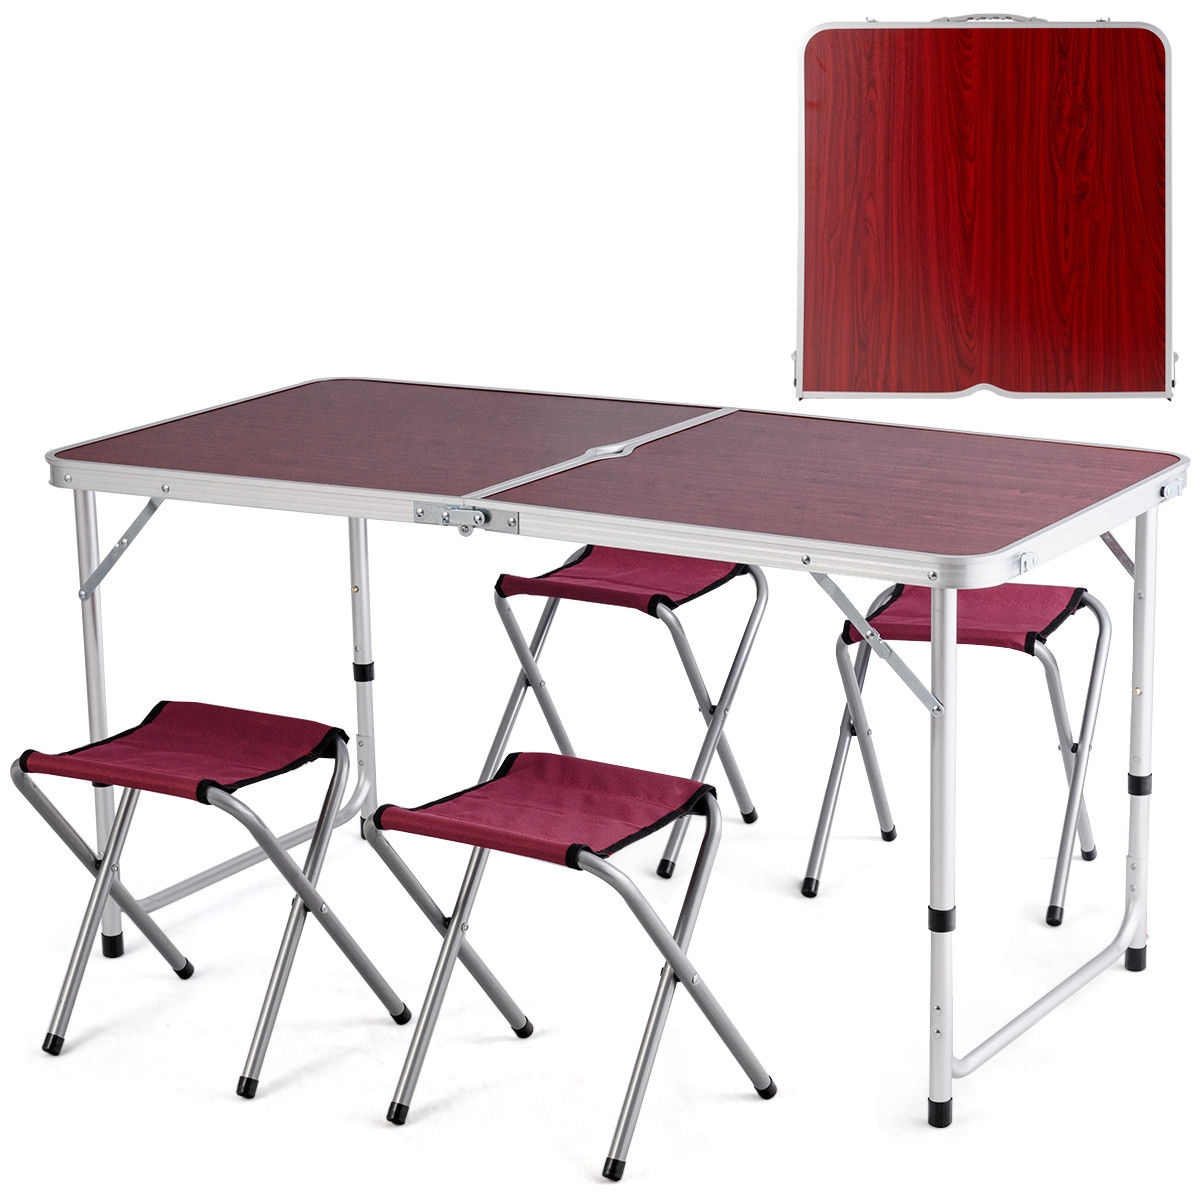 Aluminum Folding Camping Table with 4 Chairs